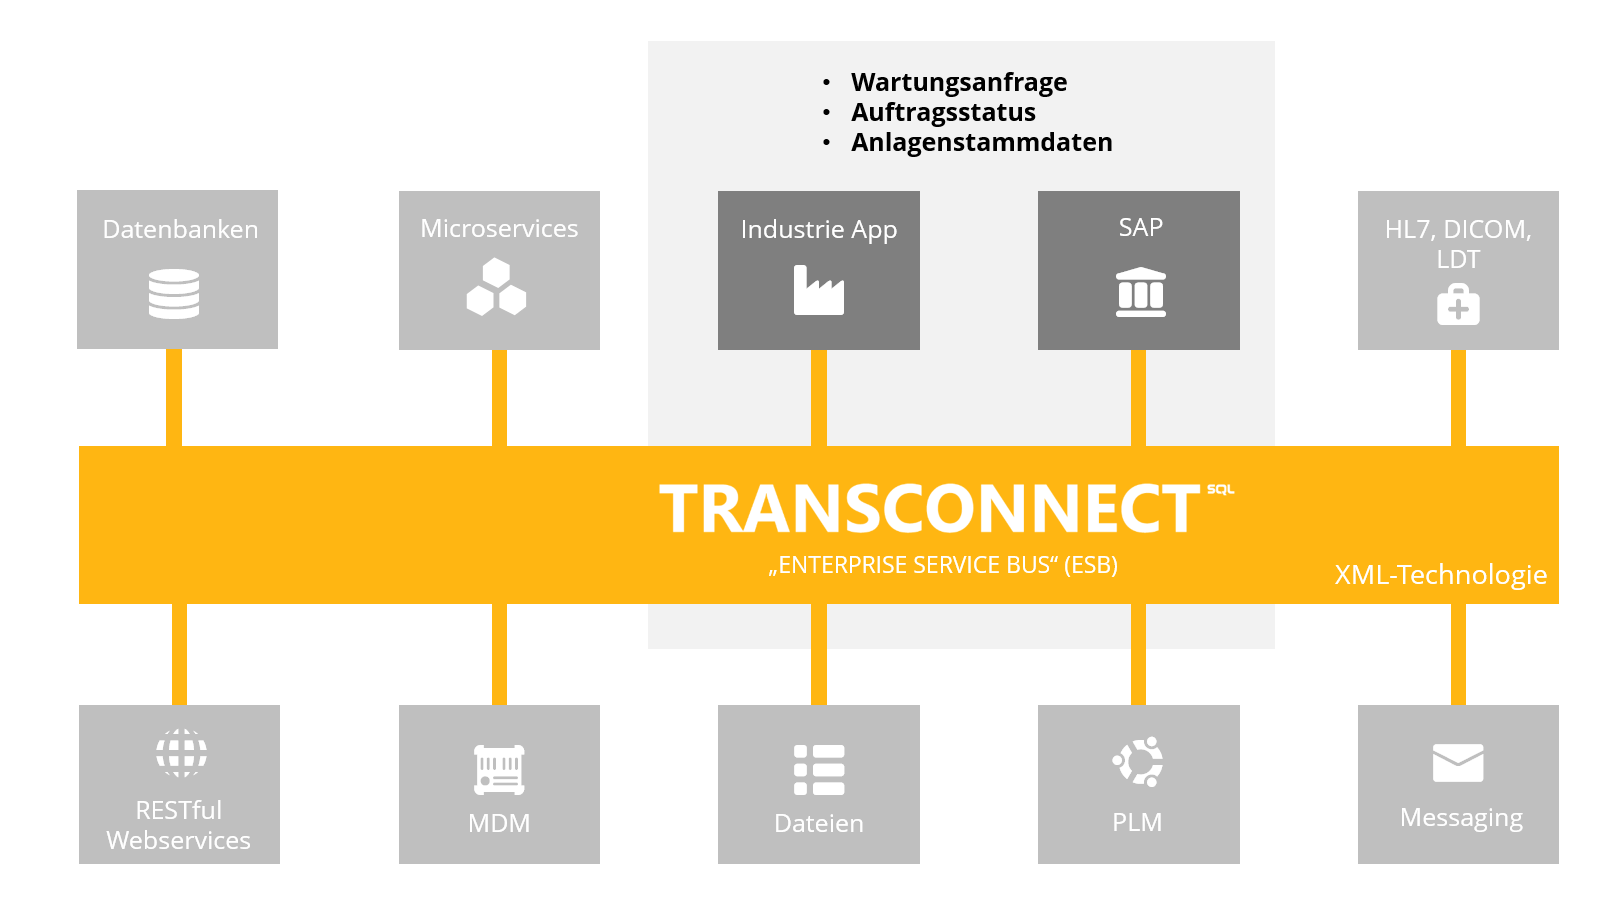 industrie-app-sap-integration-mit-transconnect